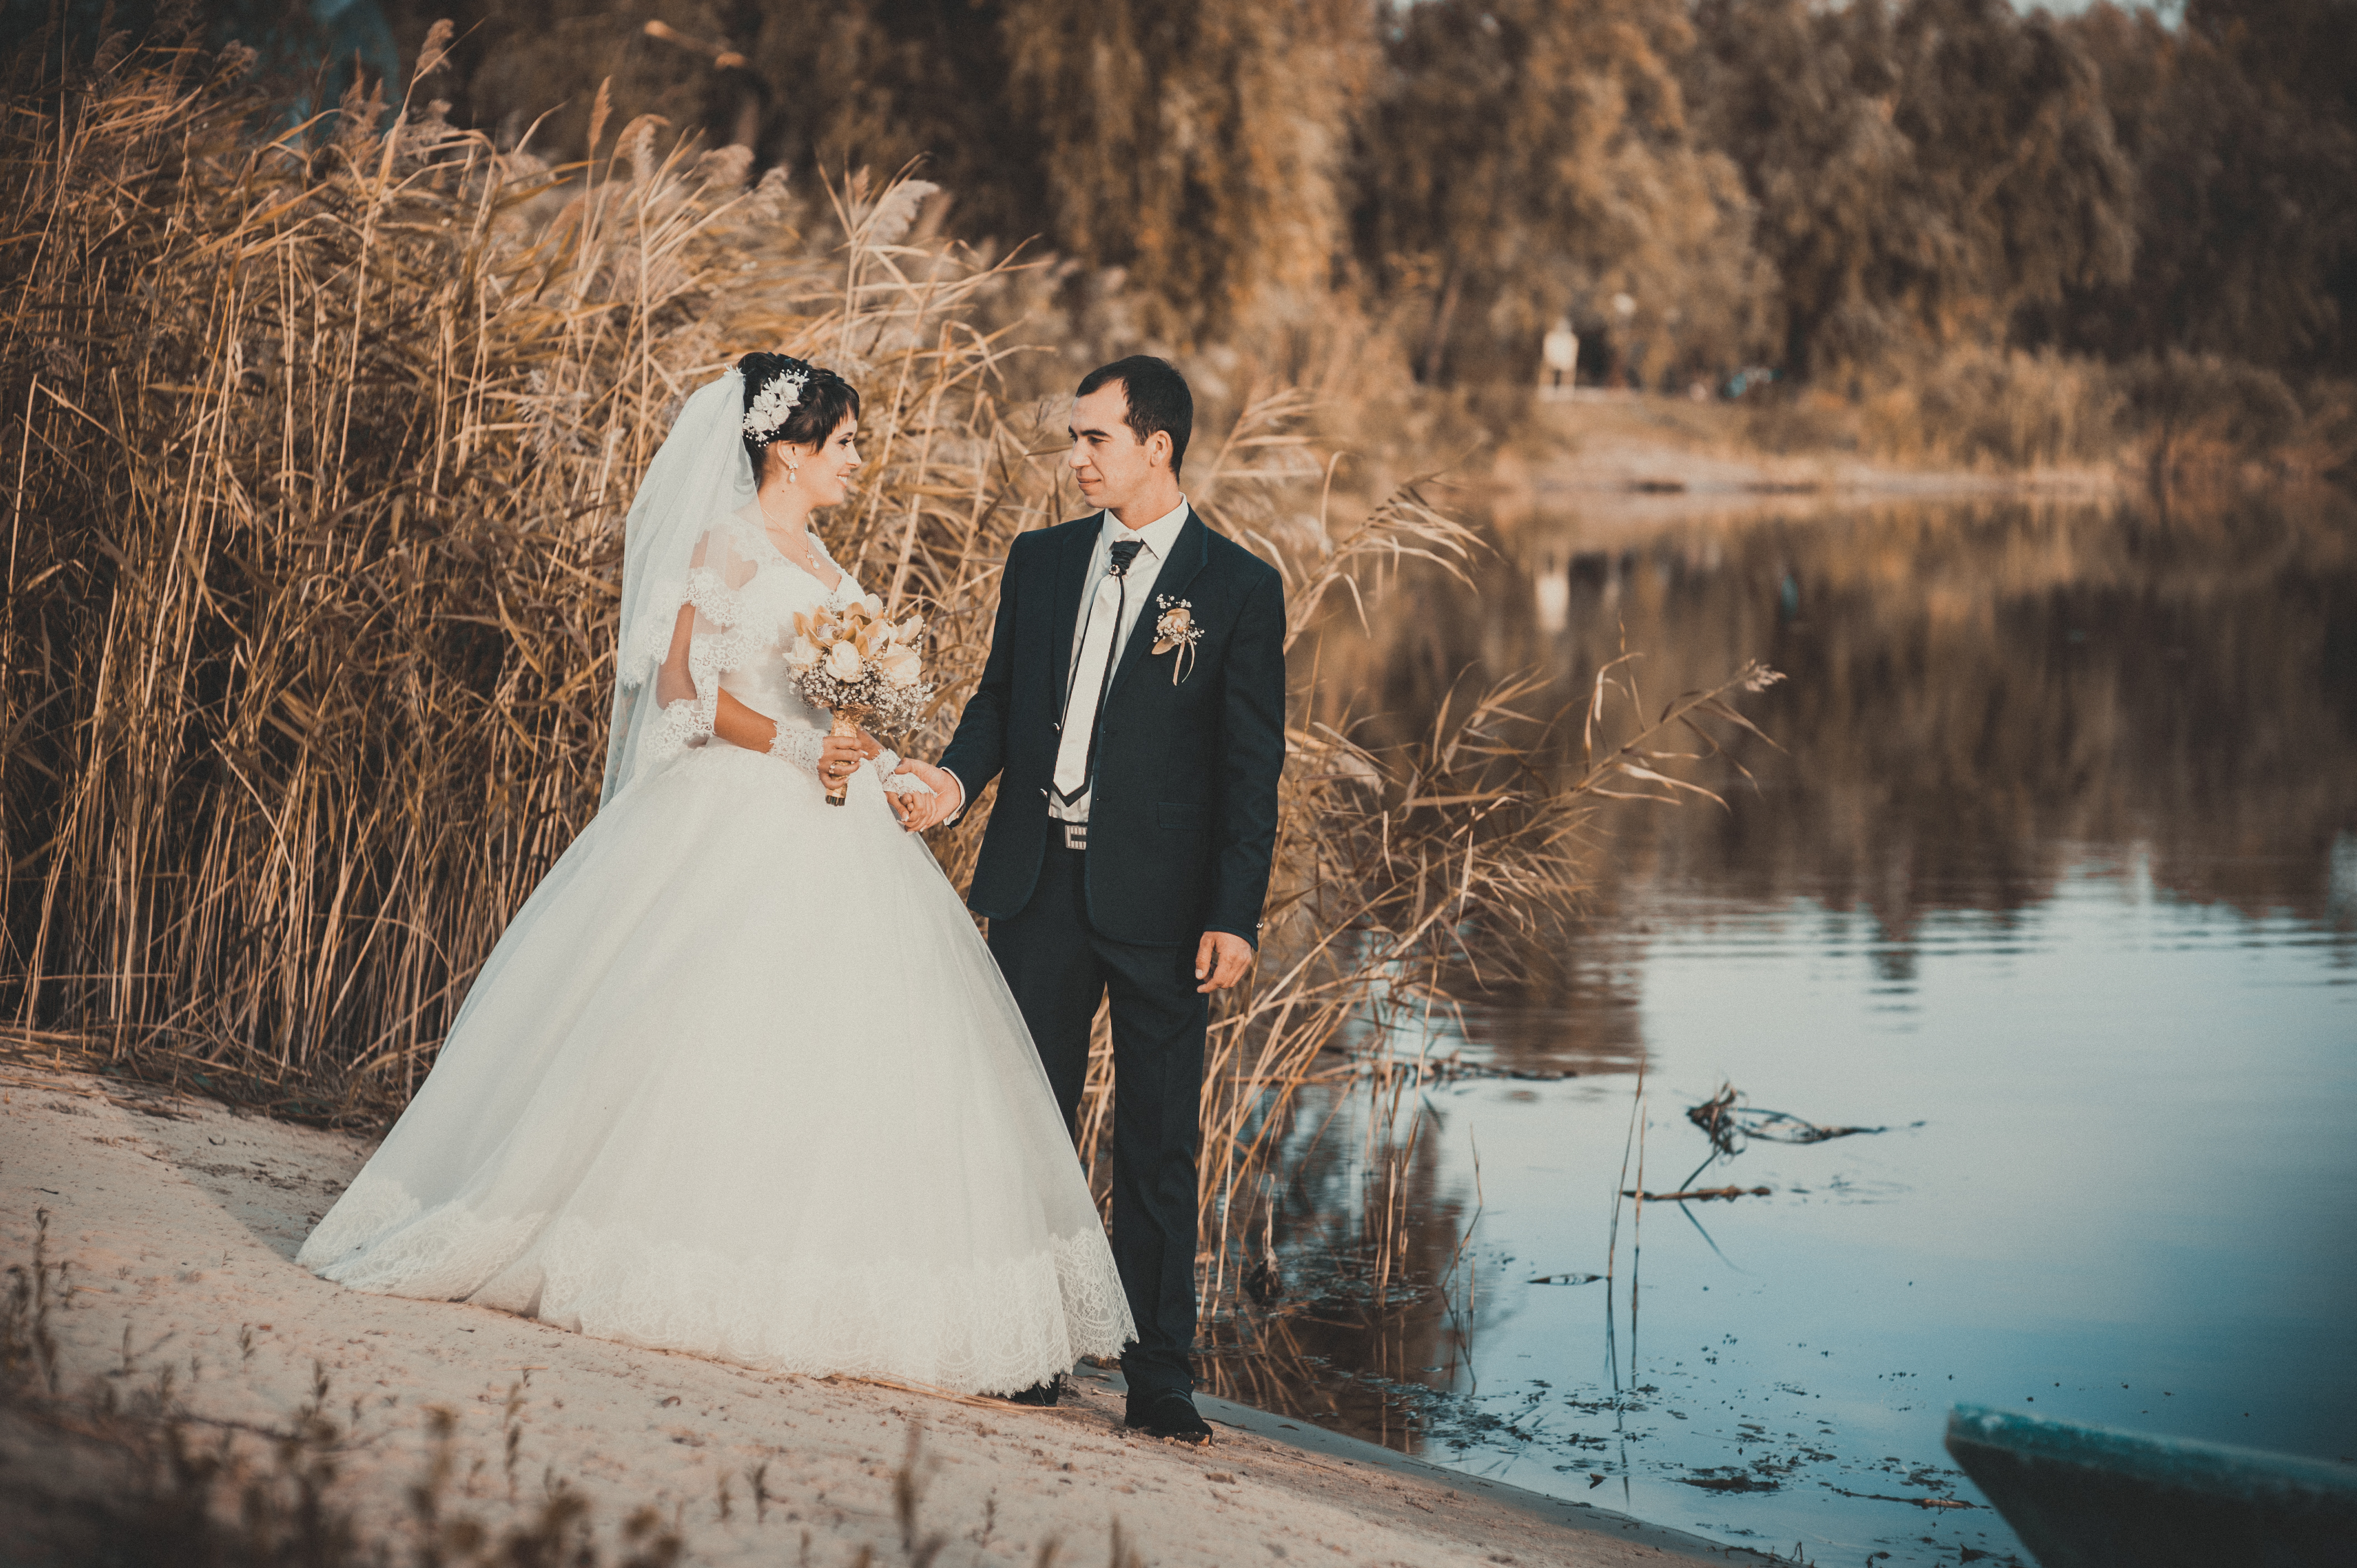 wedding: bride and groom on the seashore. Honeymoon. The bride and groom hugging on the shore of Lake. groom and bride hugging on a green lake. Groom and Bride in a park. wedding dress. Bridal wedding bouquet of flowers